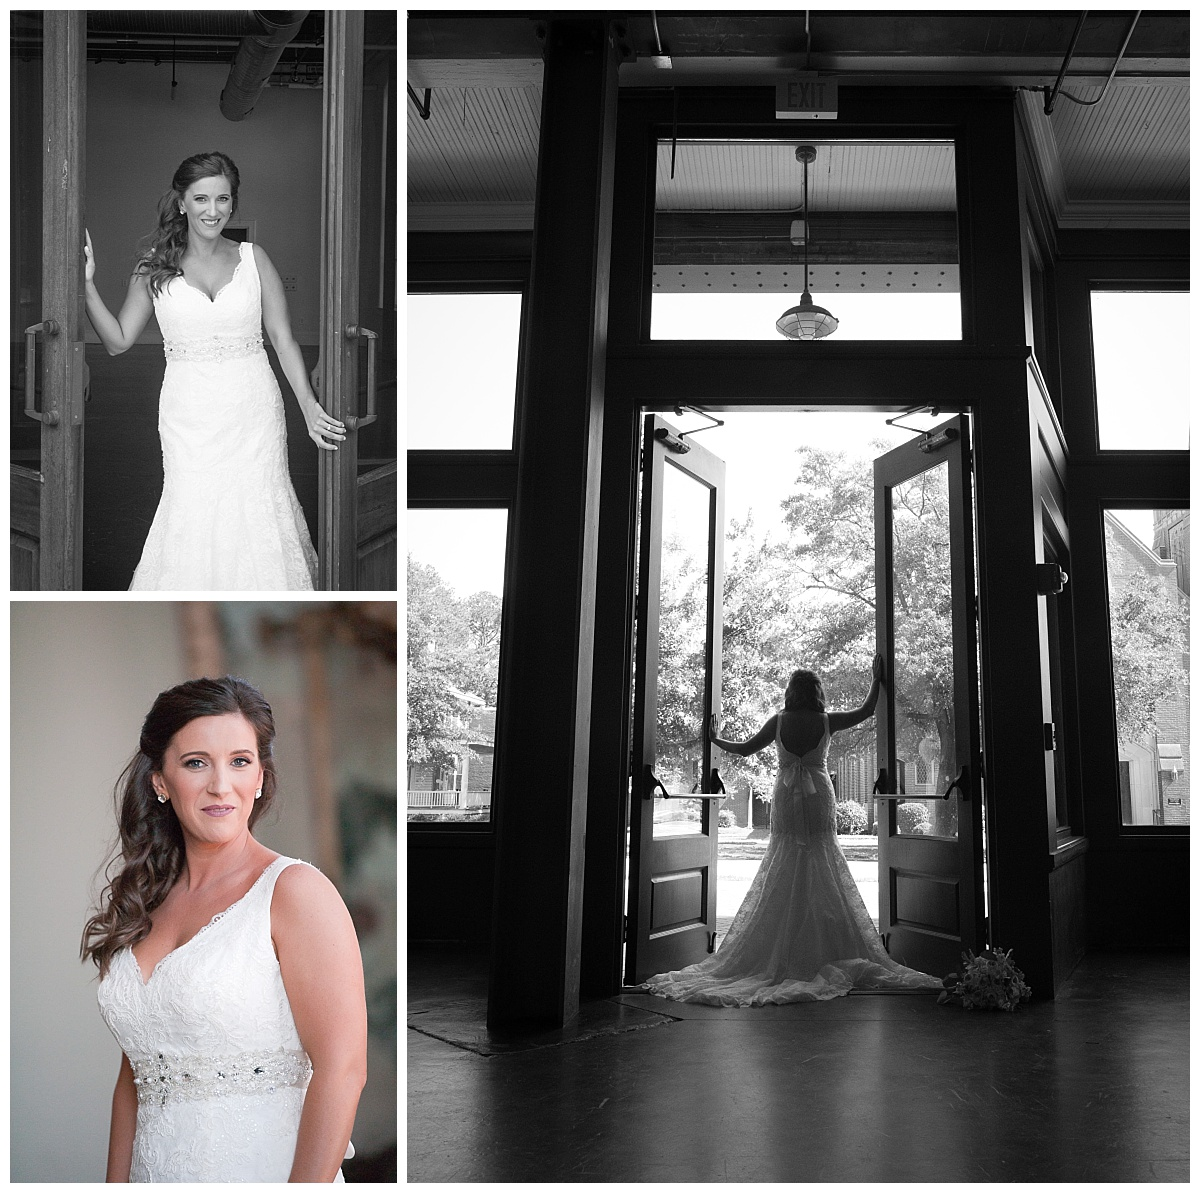 Bride by door at 701